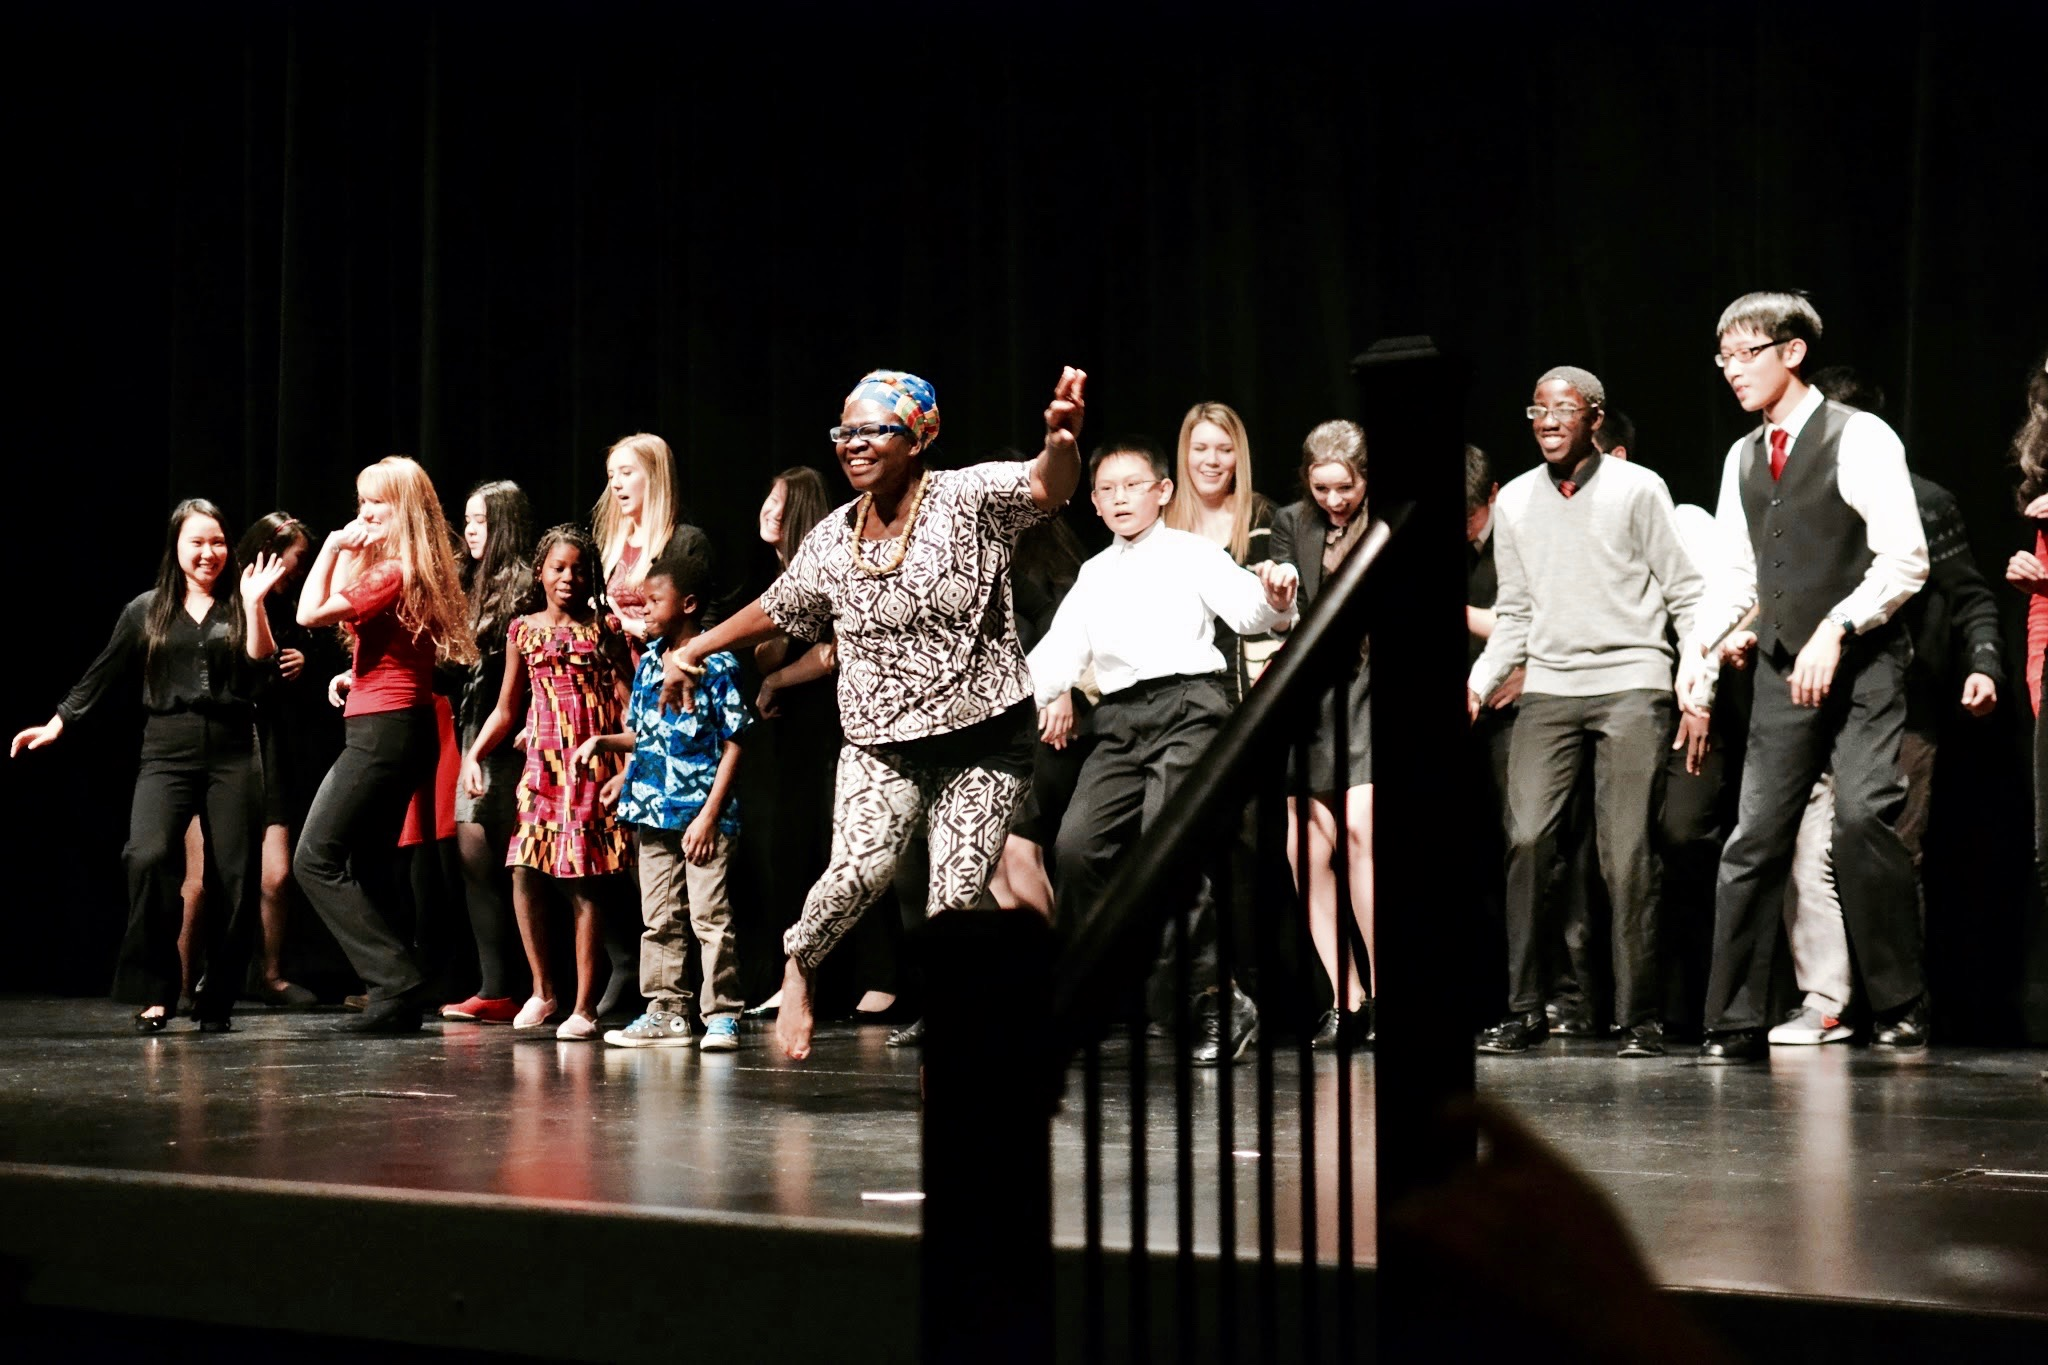 Student volunteers dancing on stage at the annual 'Ghanaian Culture Night' in Mukilteo, WA.